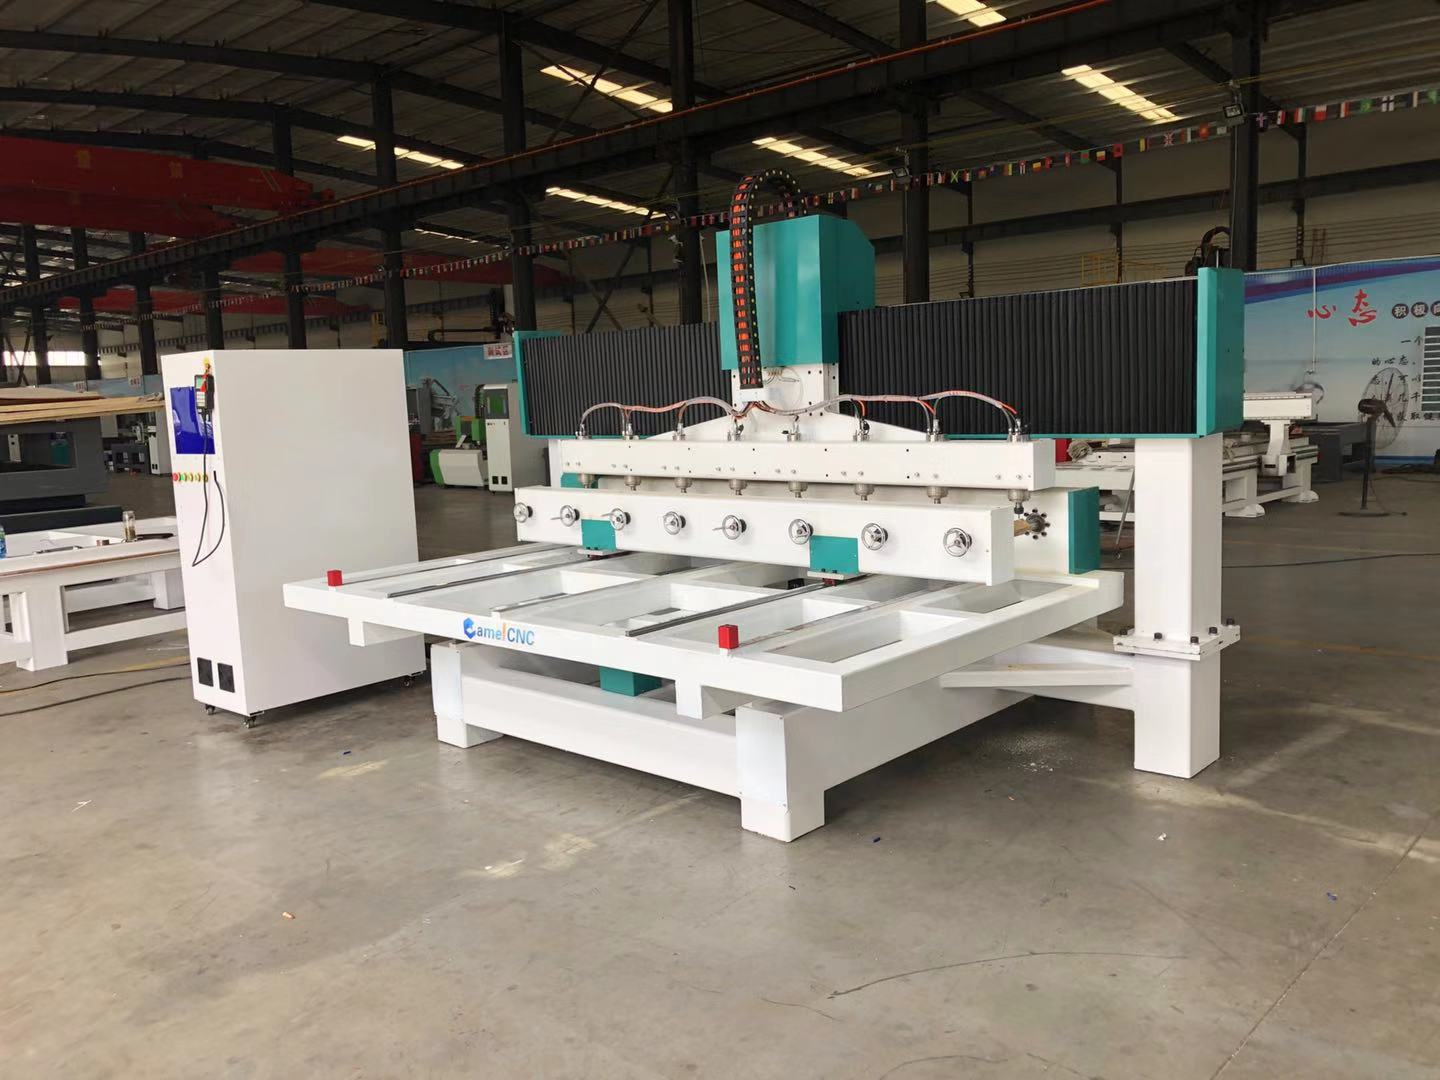 High quality CA-1225 4 axis Multi Heads Wood CNC Router Machine/DSP Sculpture Wood machinery